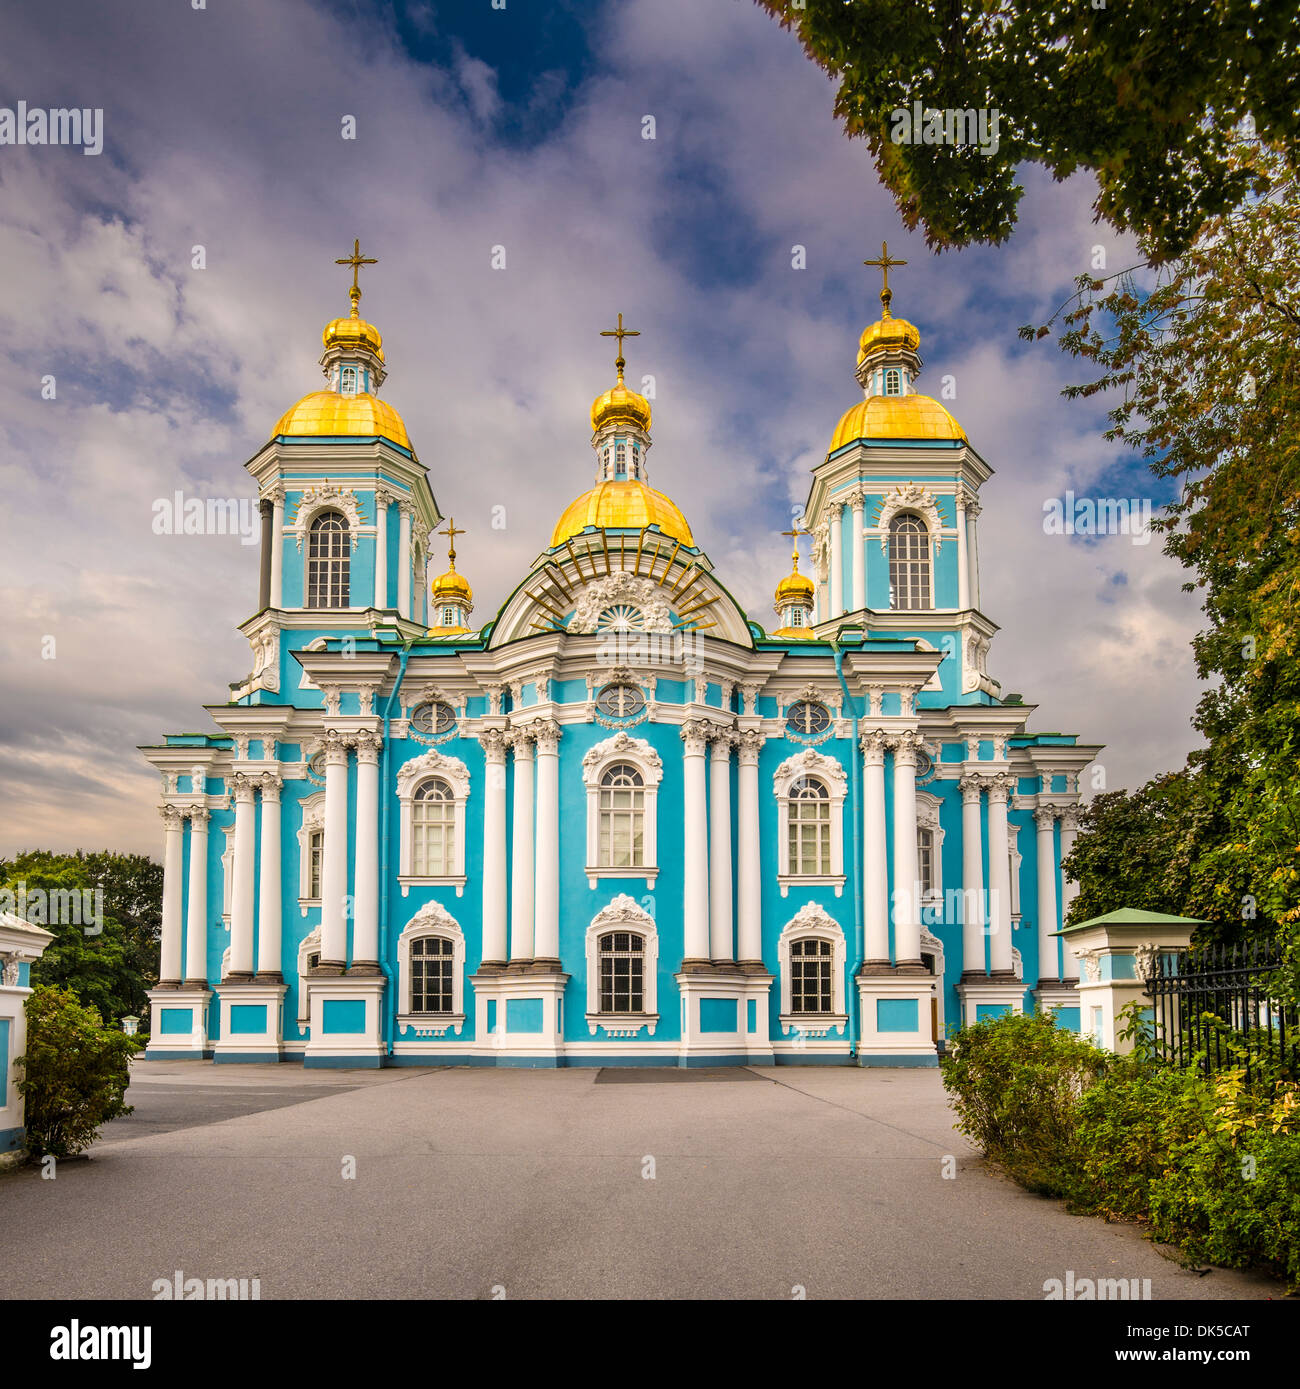 St. Nicholas Naval Cathedral in St. Petersburg, Russia. - Stock Image